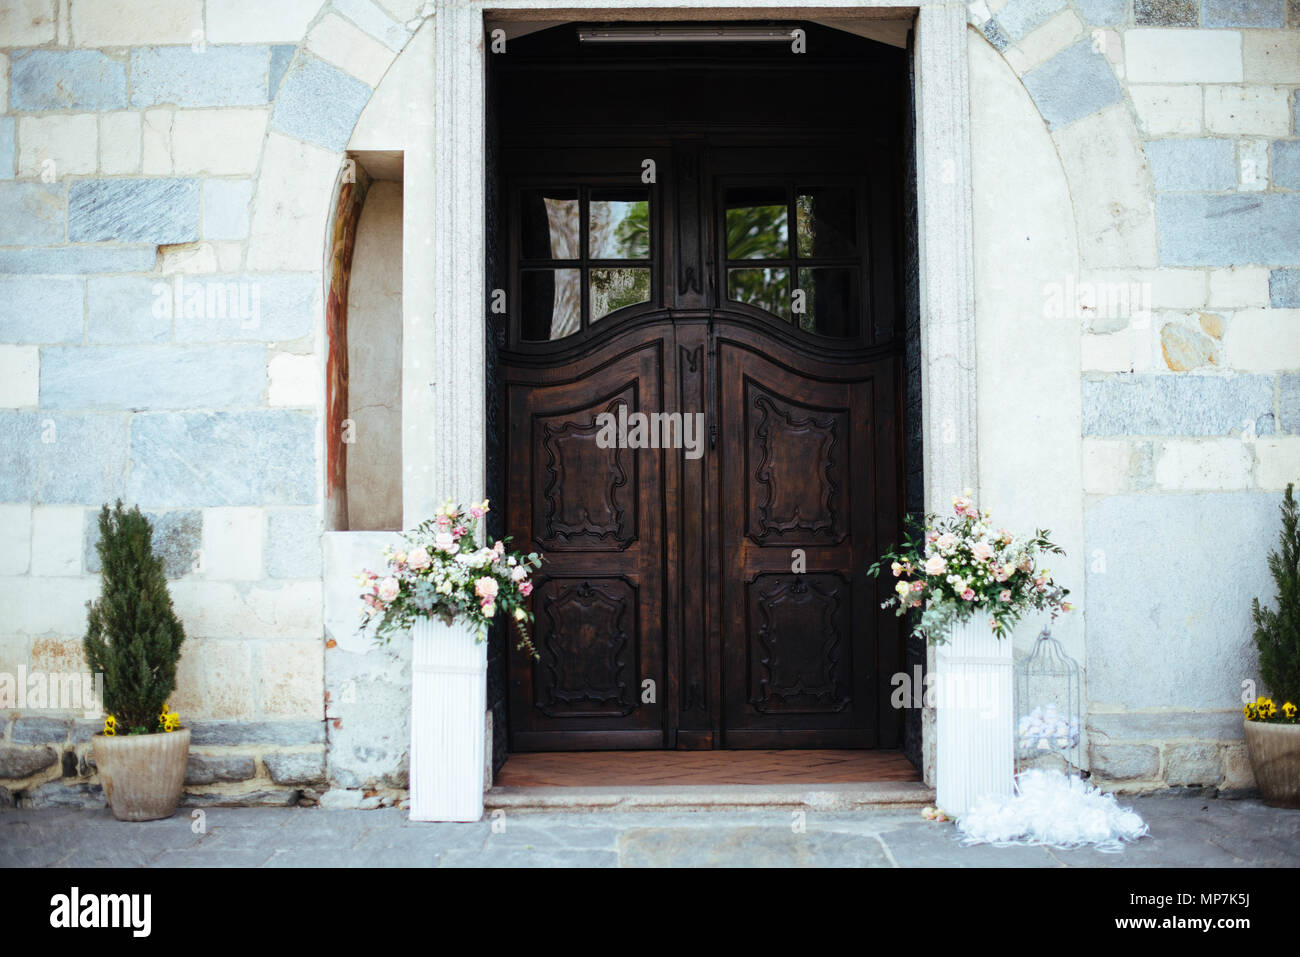 Gate Of A Romanesque Church With Flower Vases On The Sides